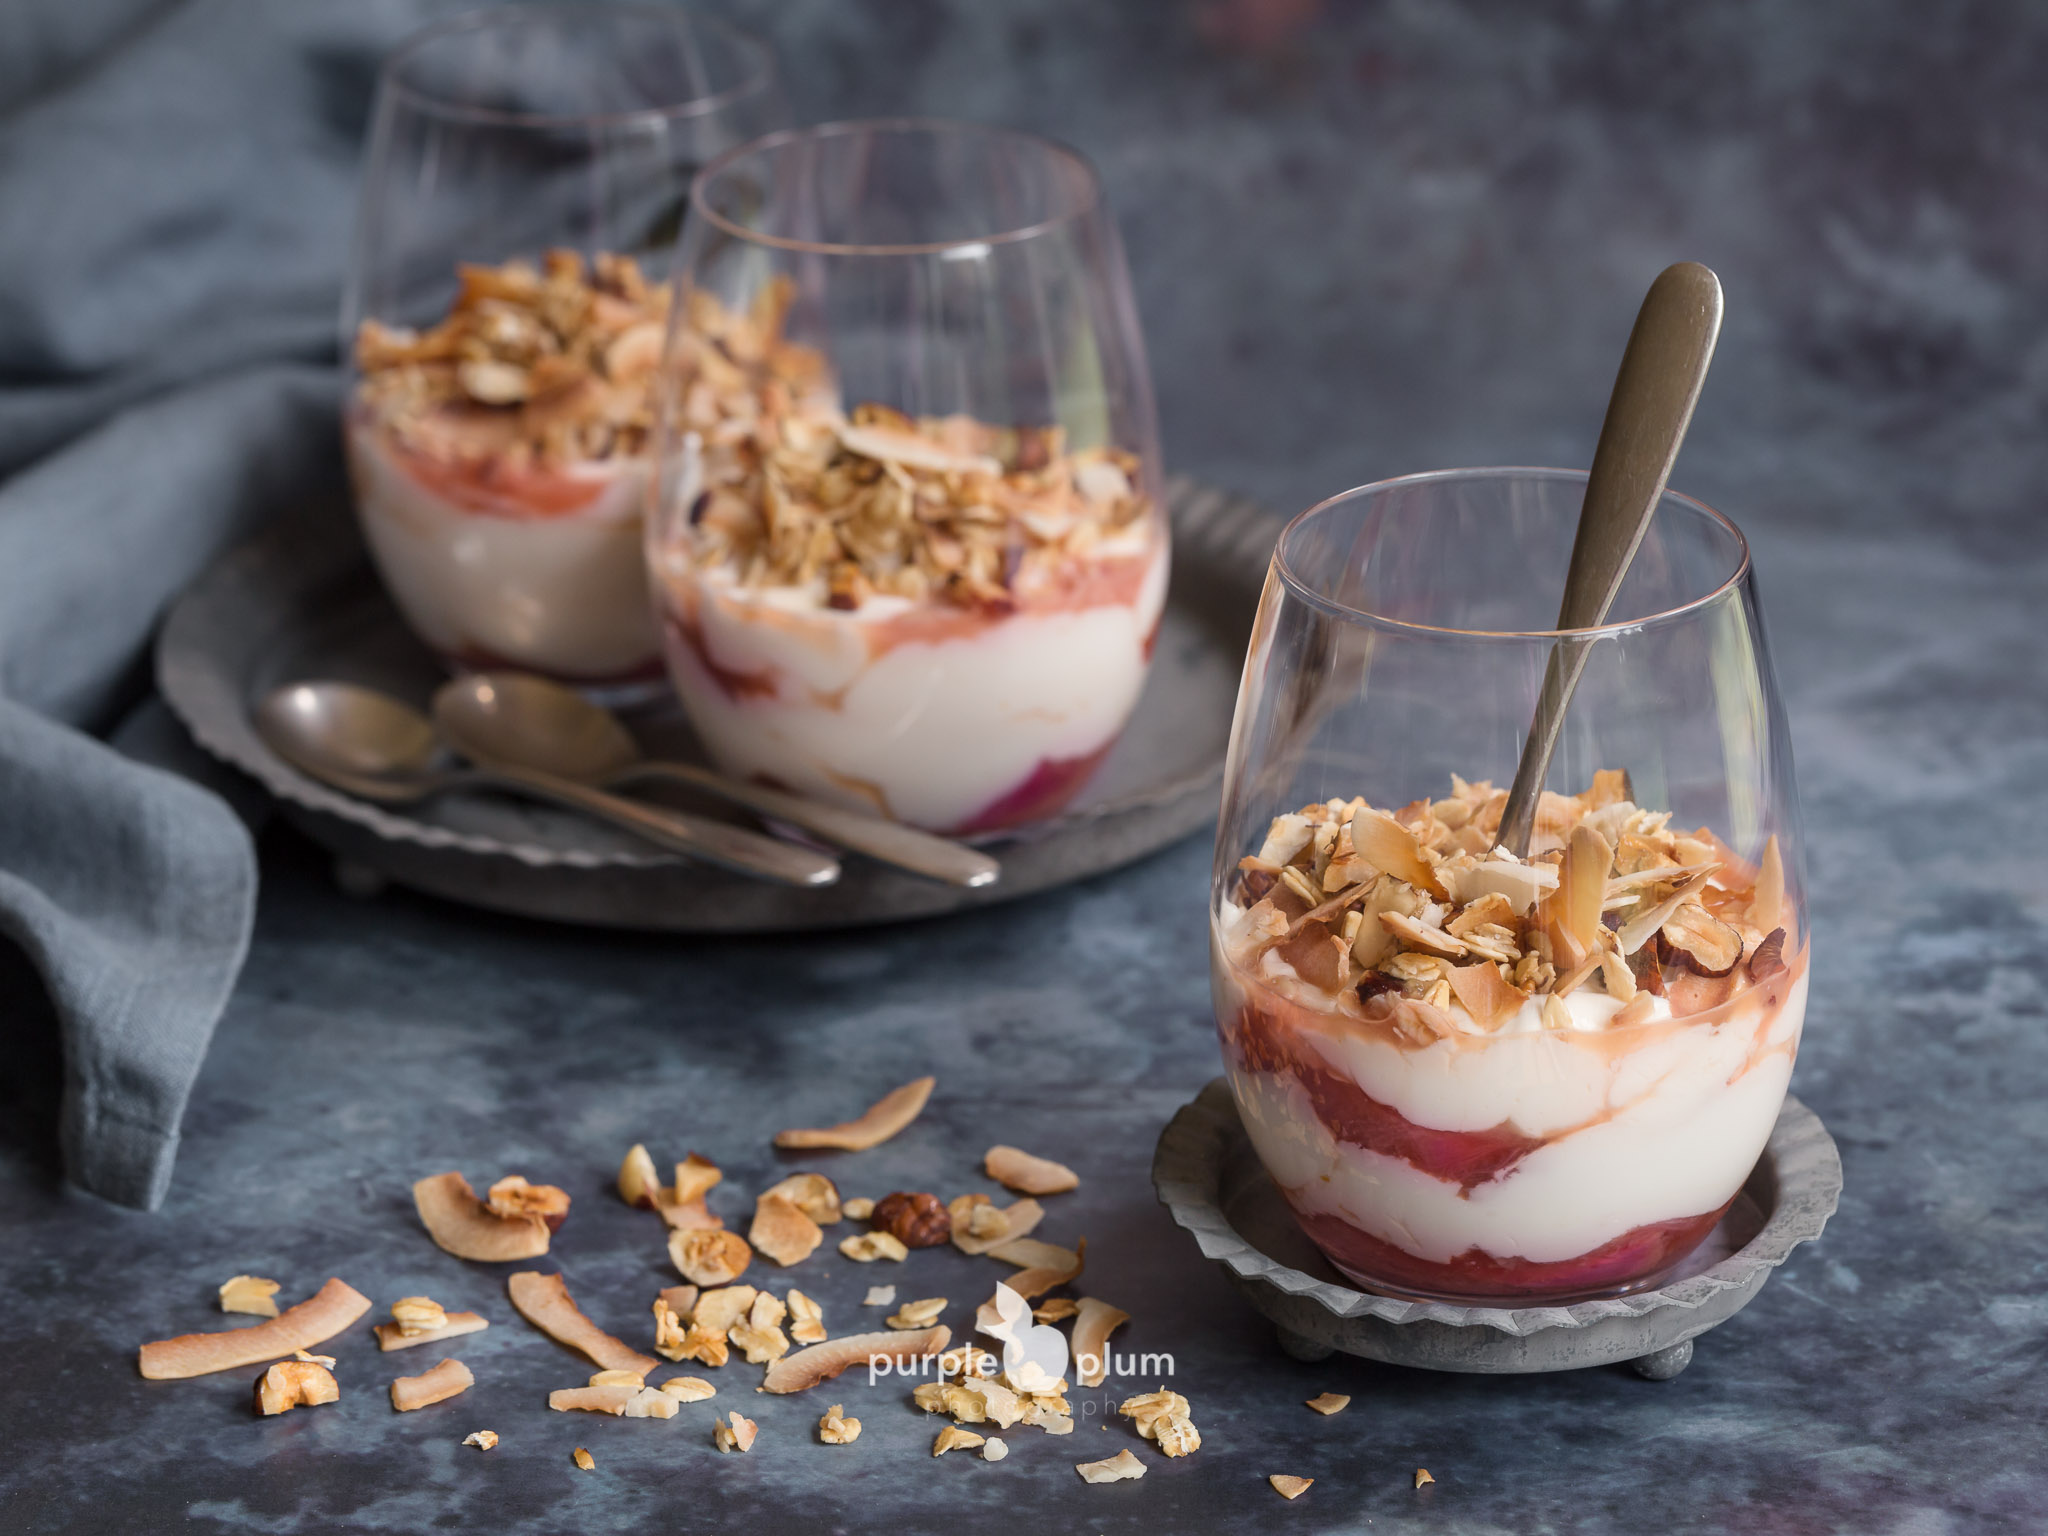 Rhubarb Breakfast Pots